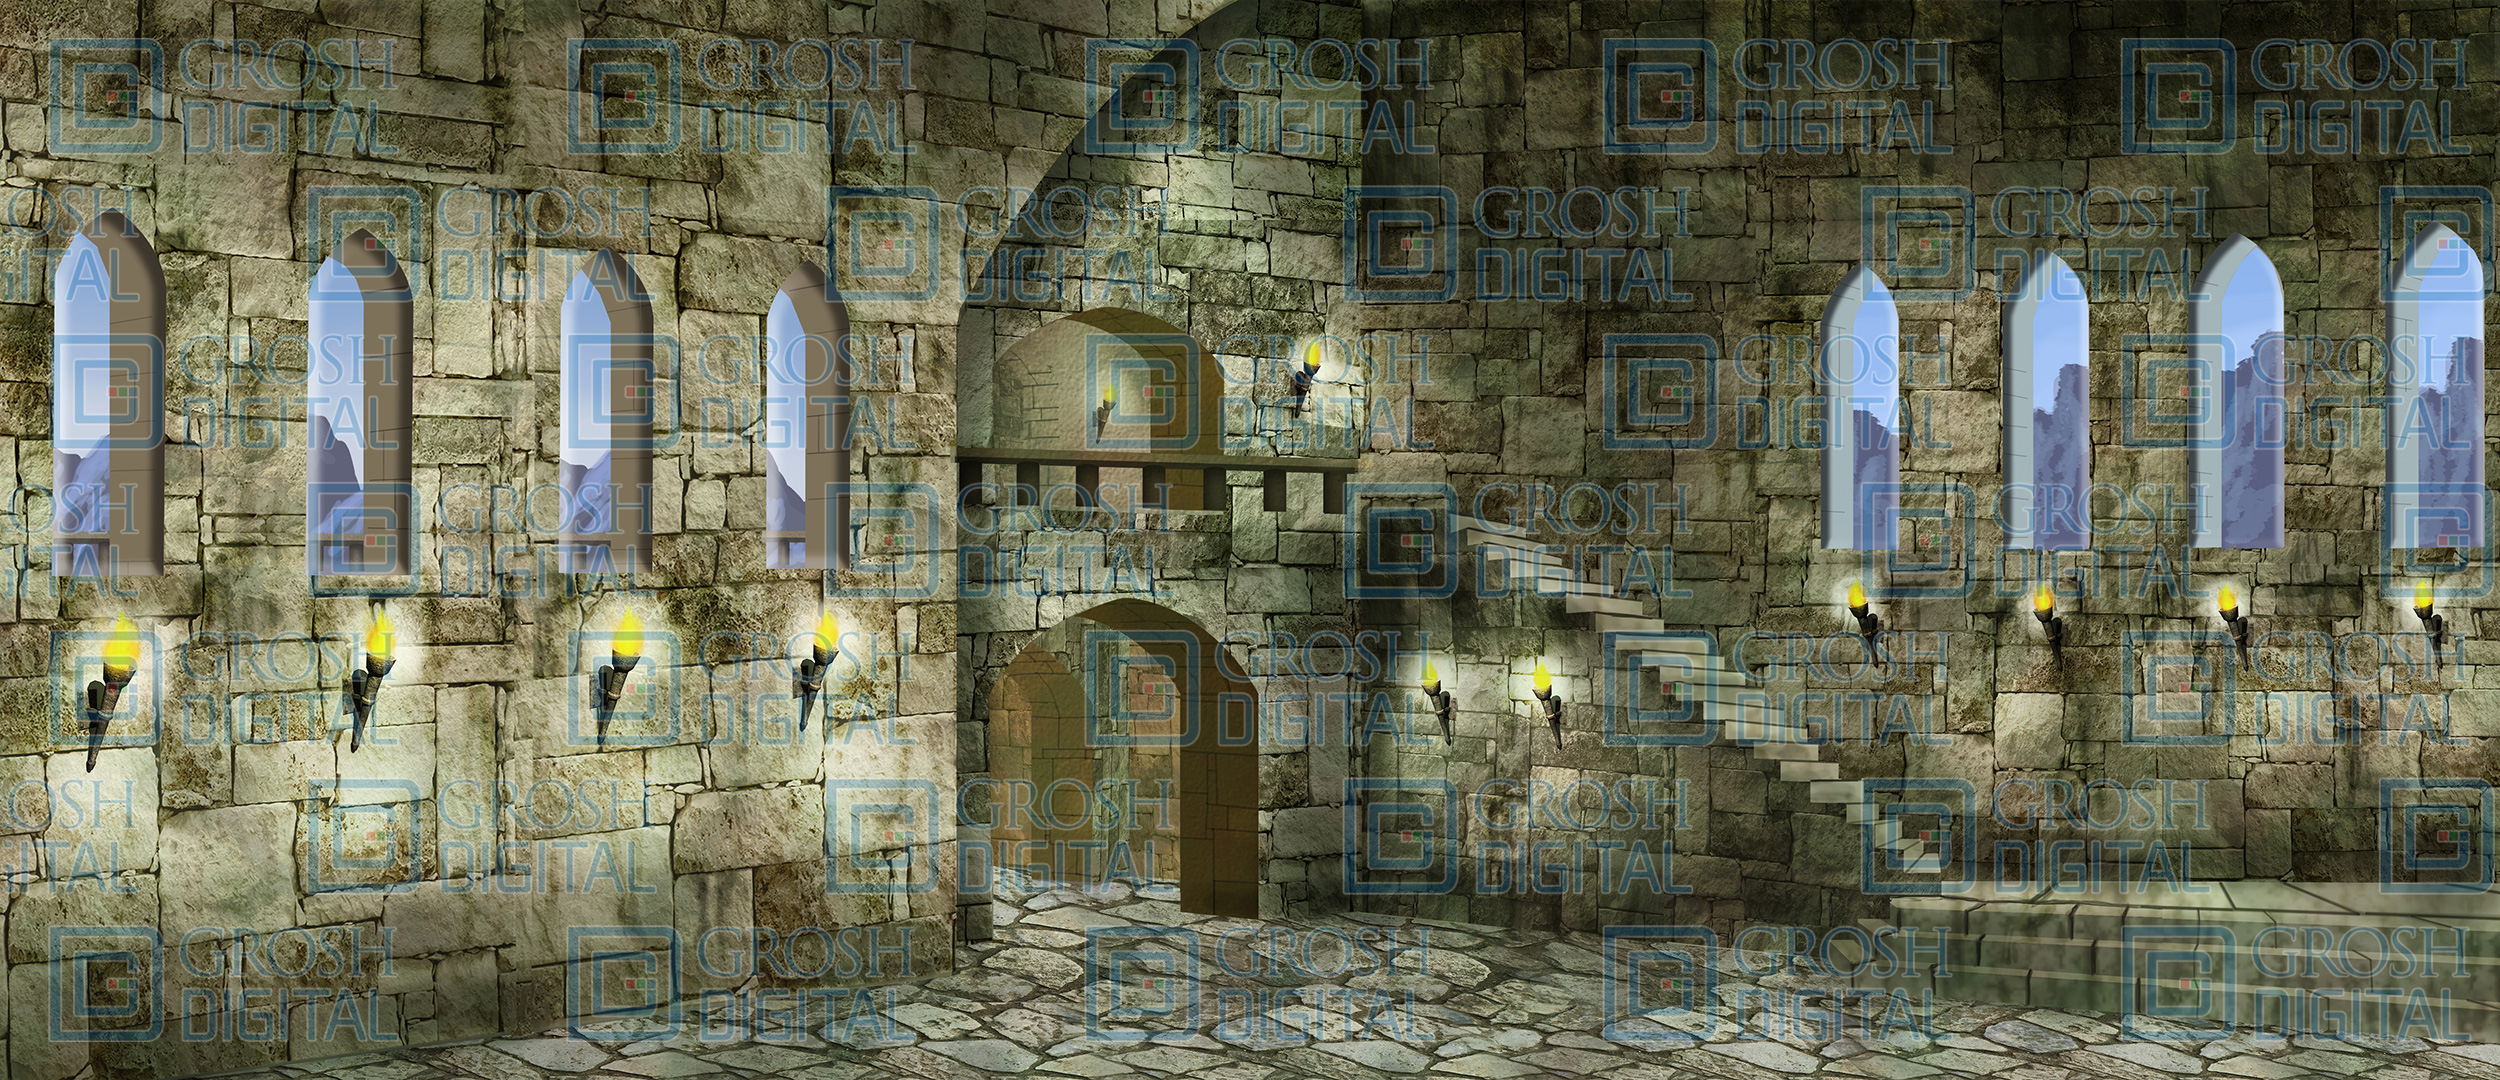 Witches Castle Projected Backdrops Grosh Digital